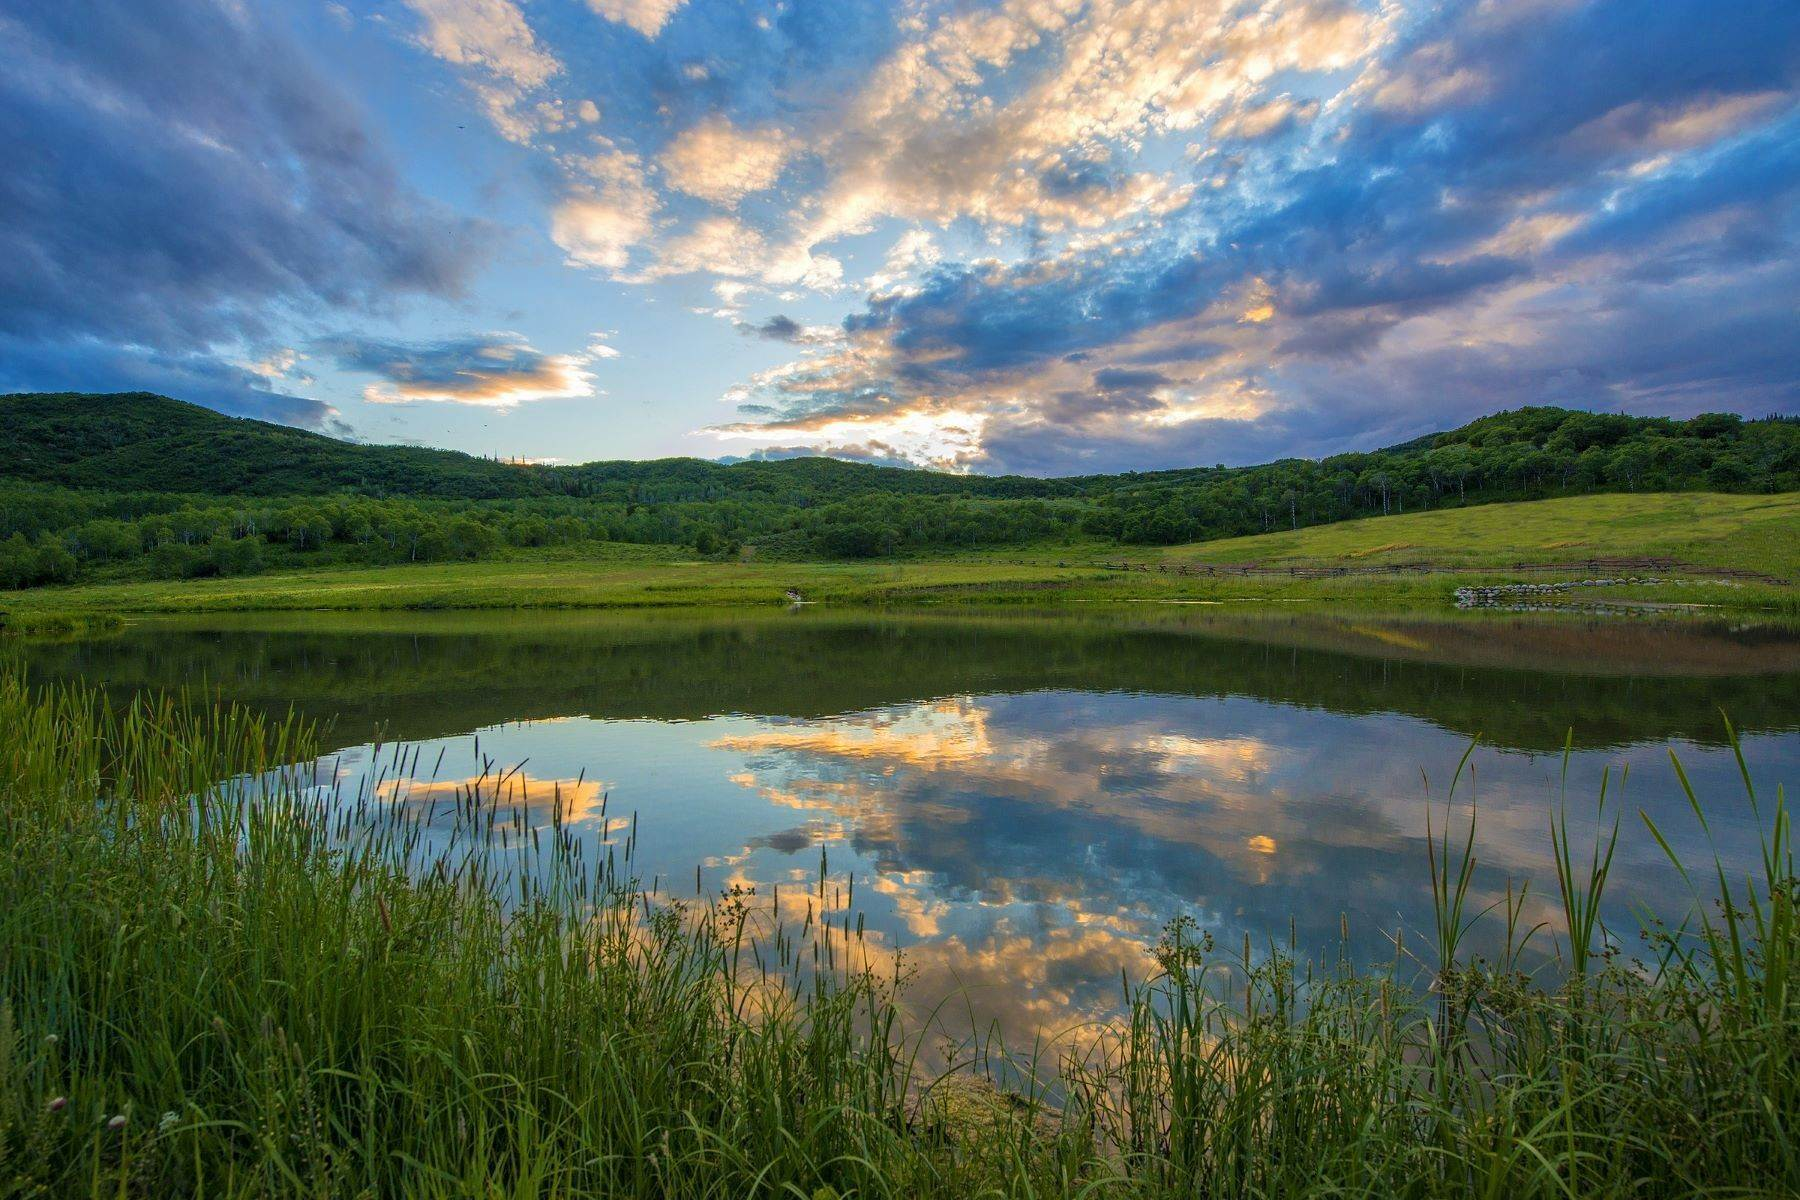 Property for Sale at Strawberry Park Ranch 40875 County Road 36 Steamboat Springs, Colorado 80487 United States